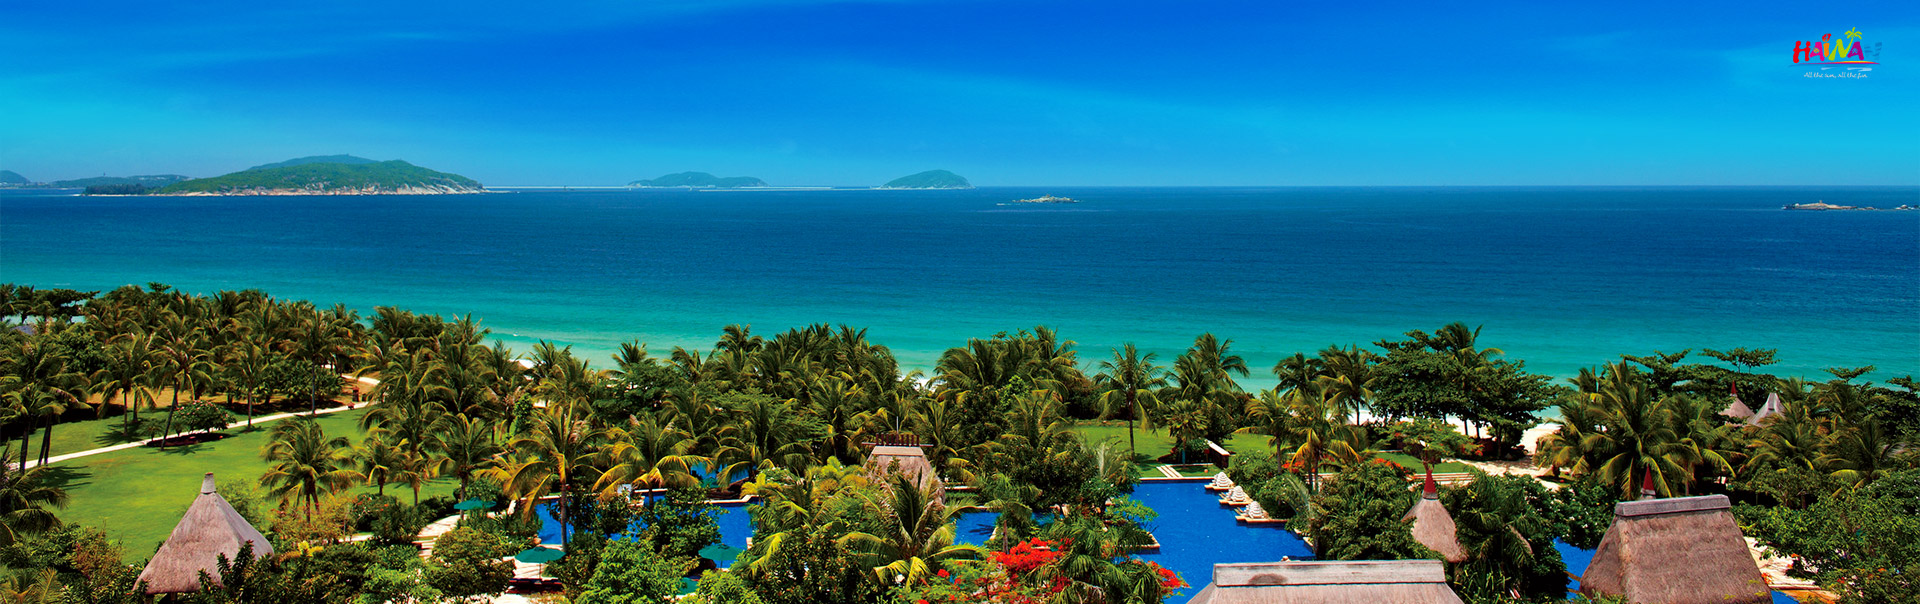 Best of Hainan Tour | Wendy Wu Tours